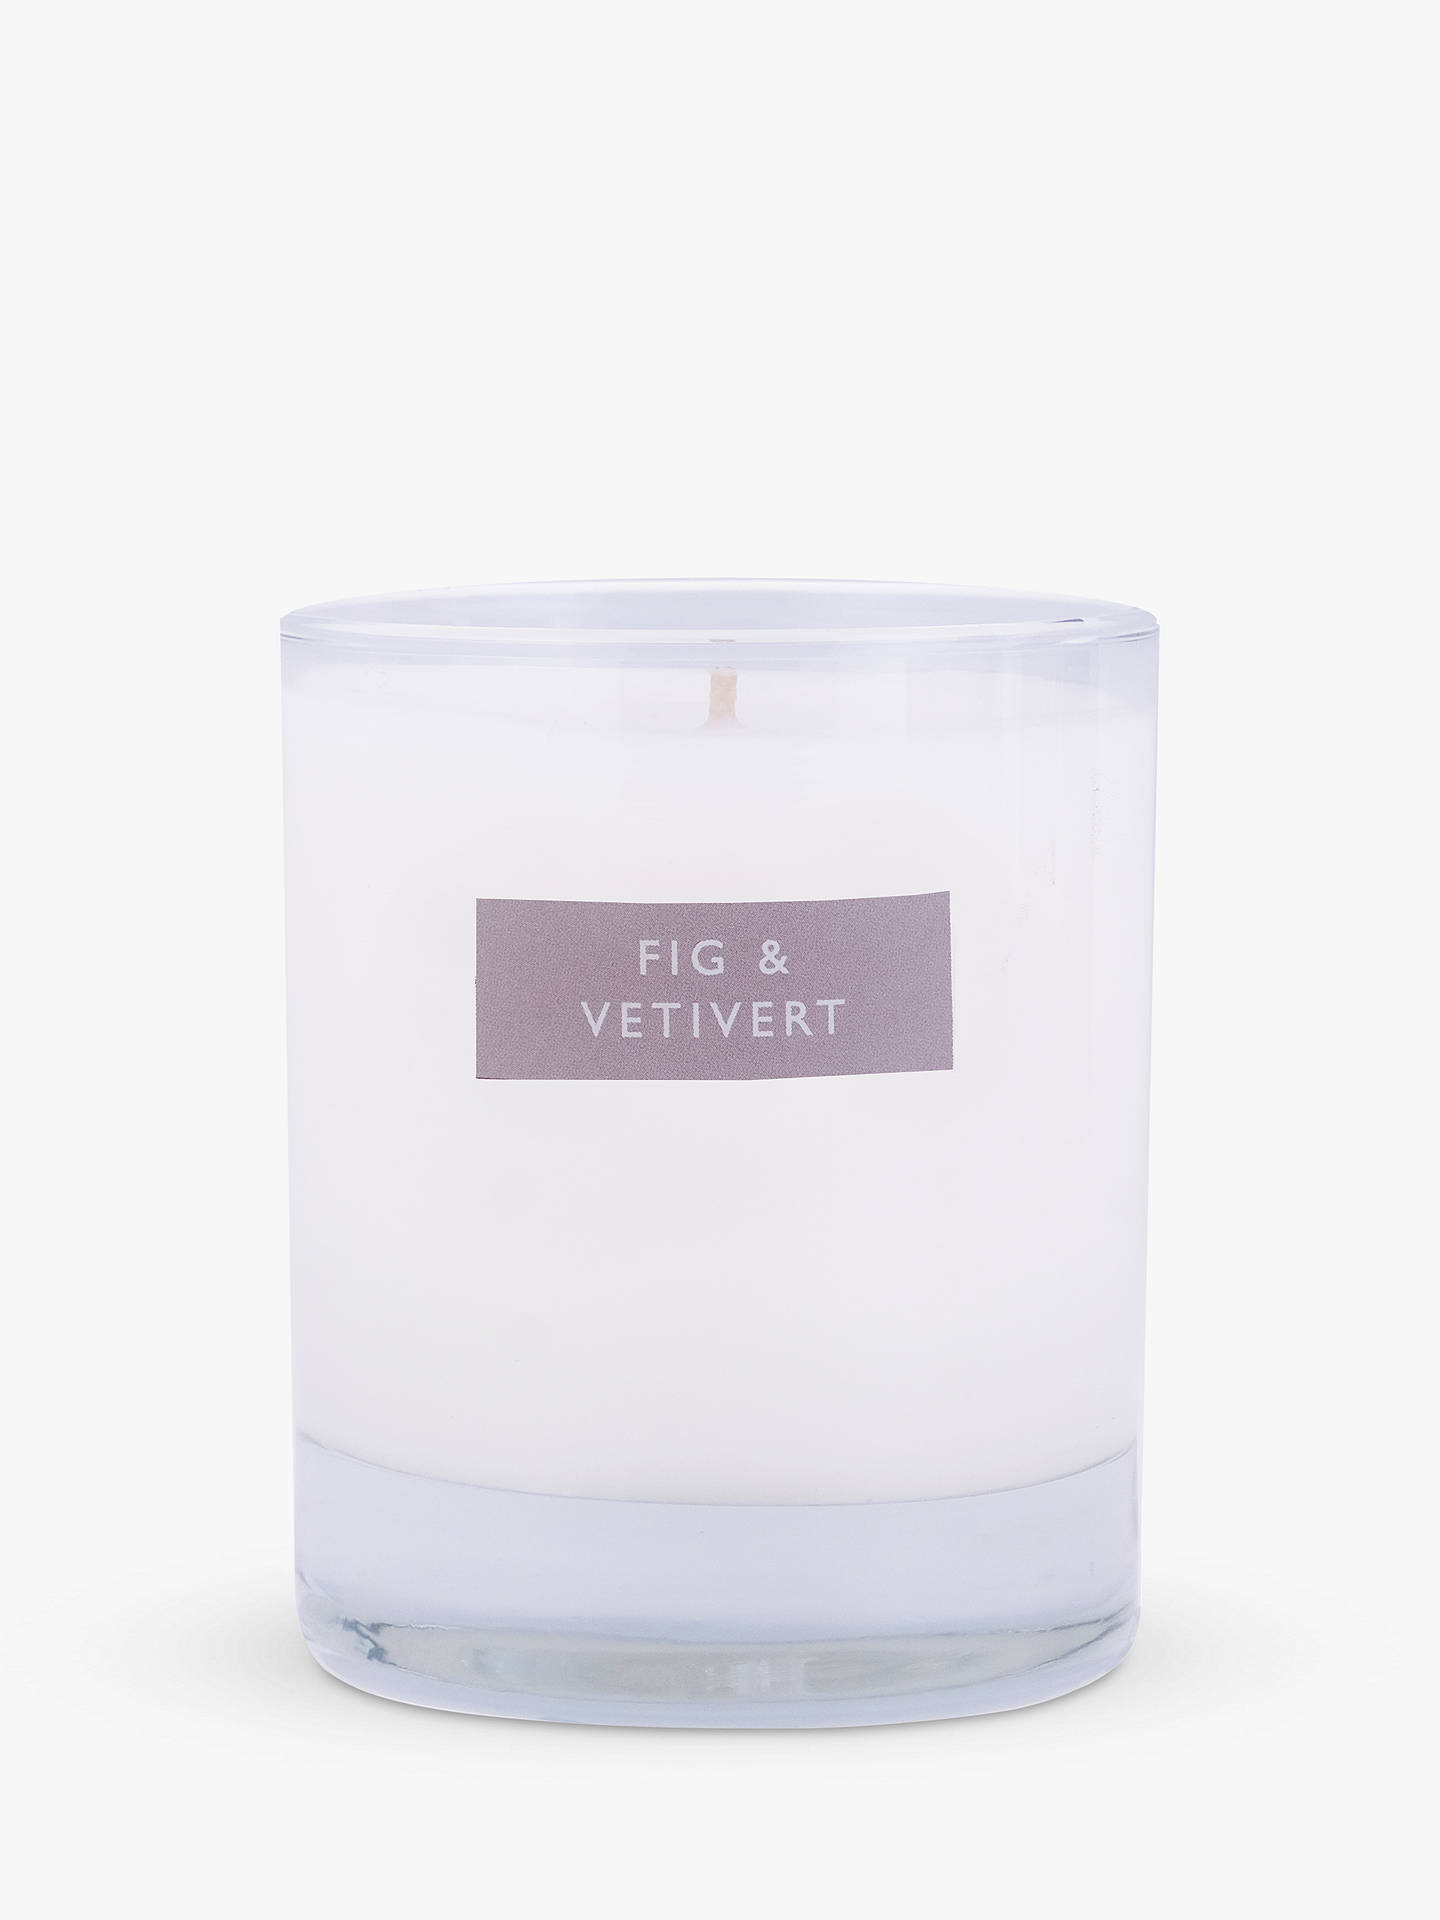 Buy John Lewis & Partners Fig & Vetivert Scented Candle, 180g Online at johnlewis.com